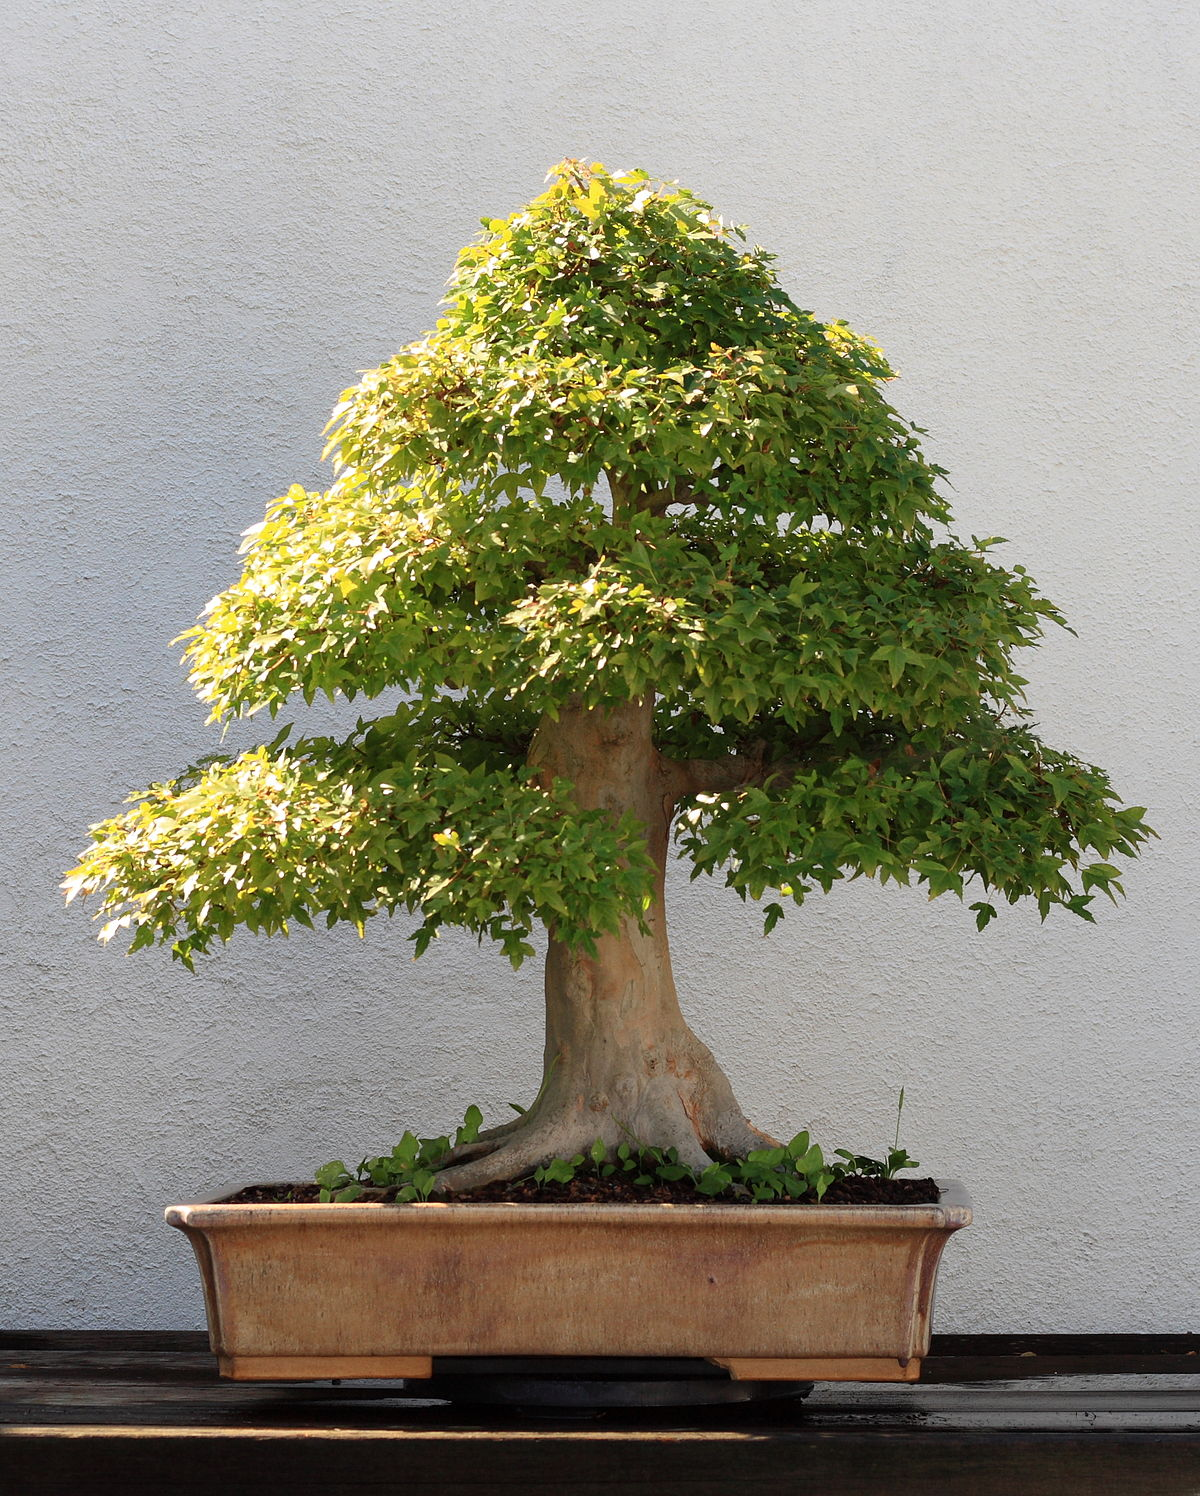 Bonsai cultivation and care wikipedia - Plantas para bonsai ...